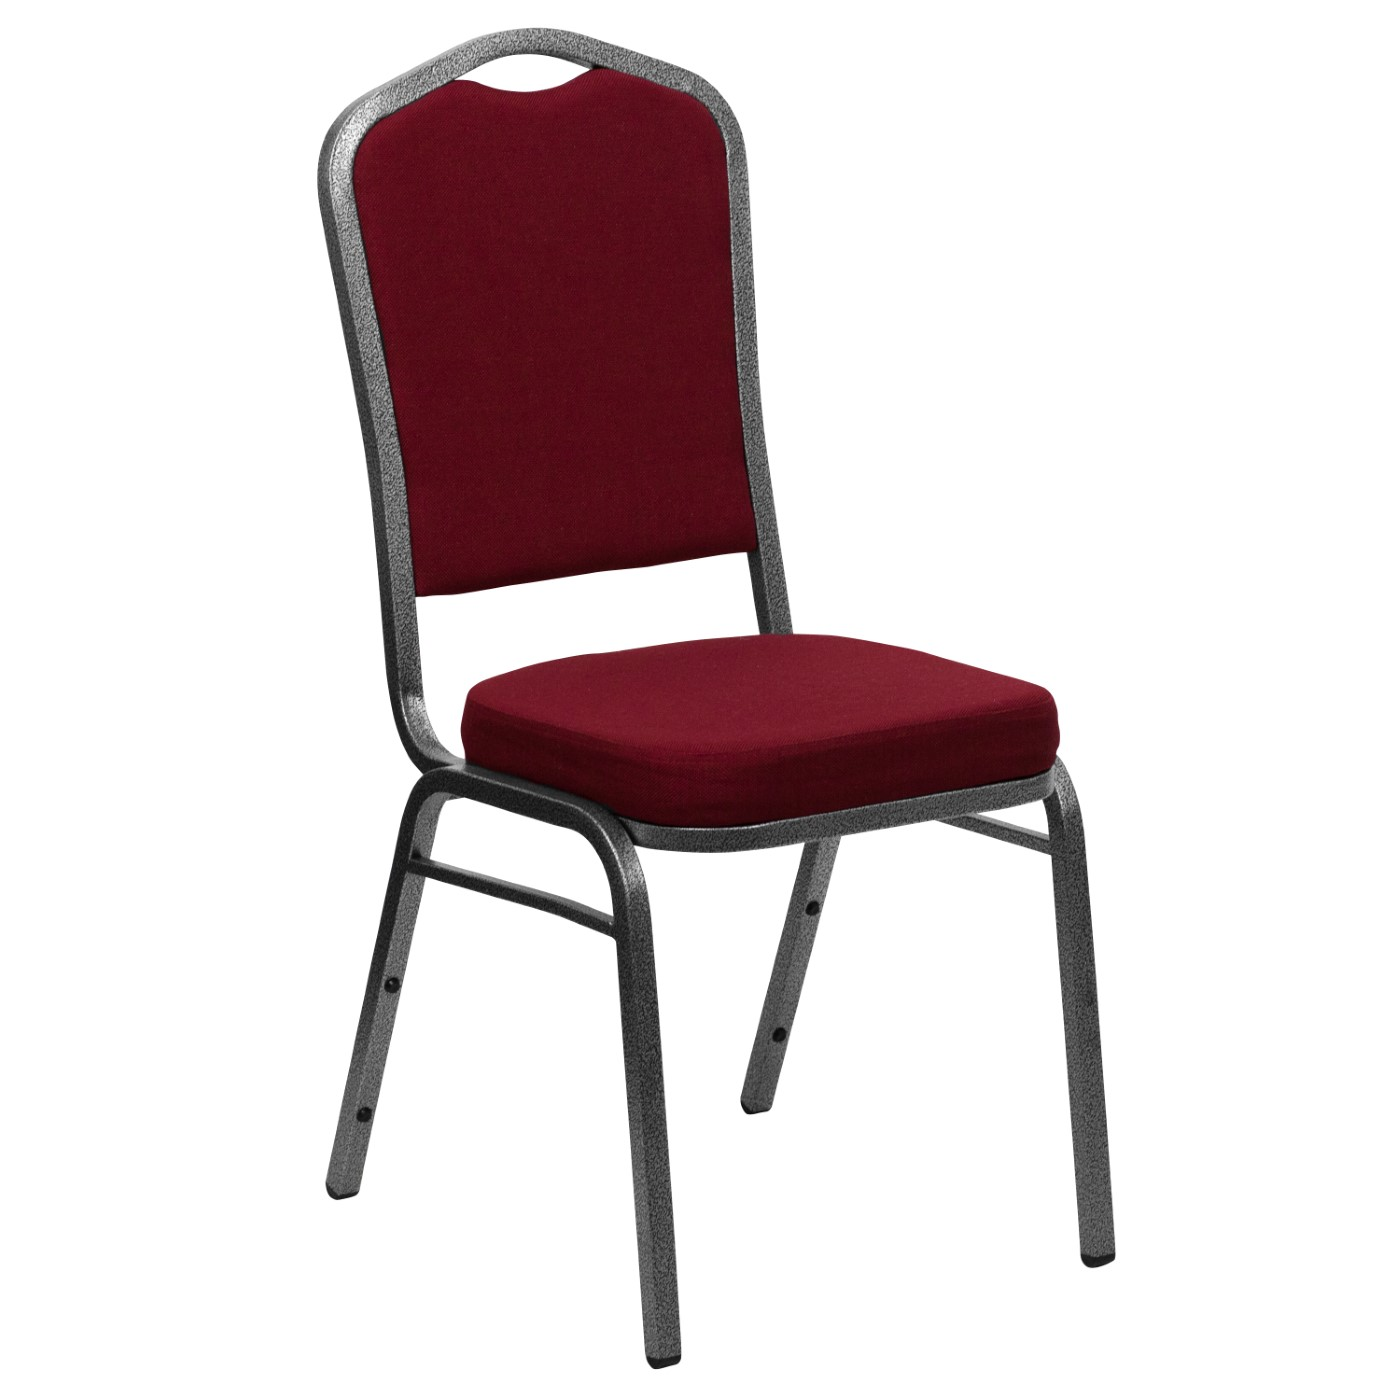 TOUGH ENOUGH Series Crown Back Stacking Banquet Chair in Burgundy Fabric - Silver Vein Frame